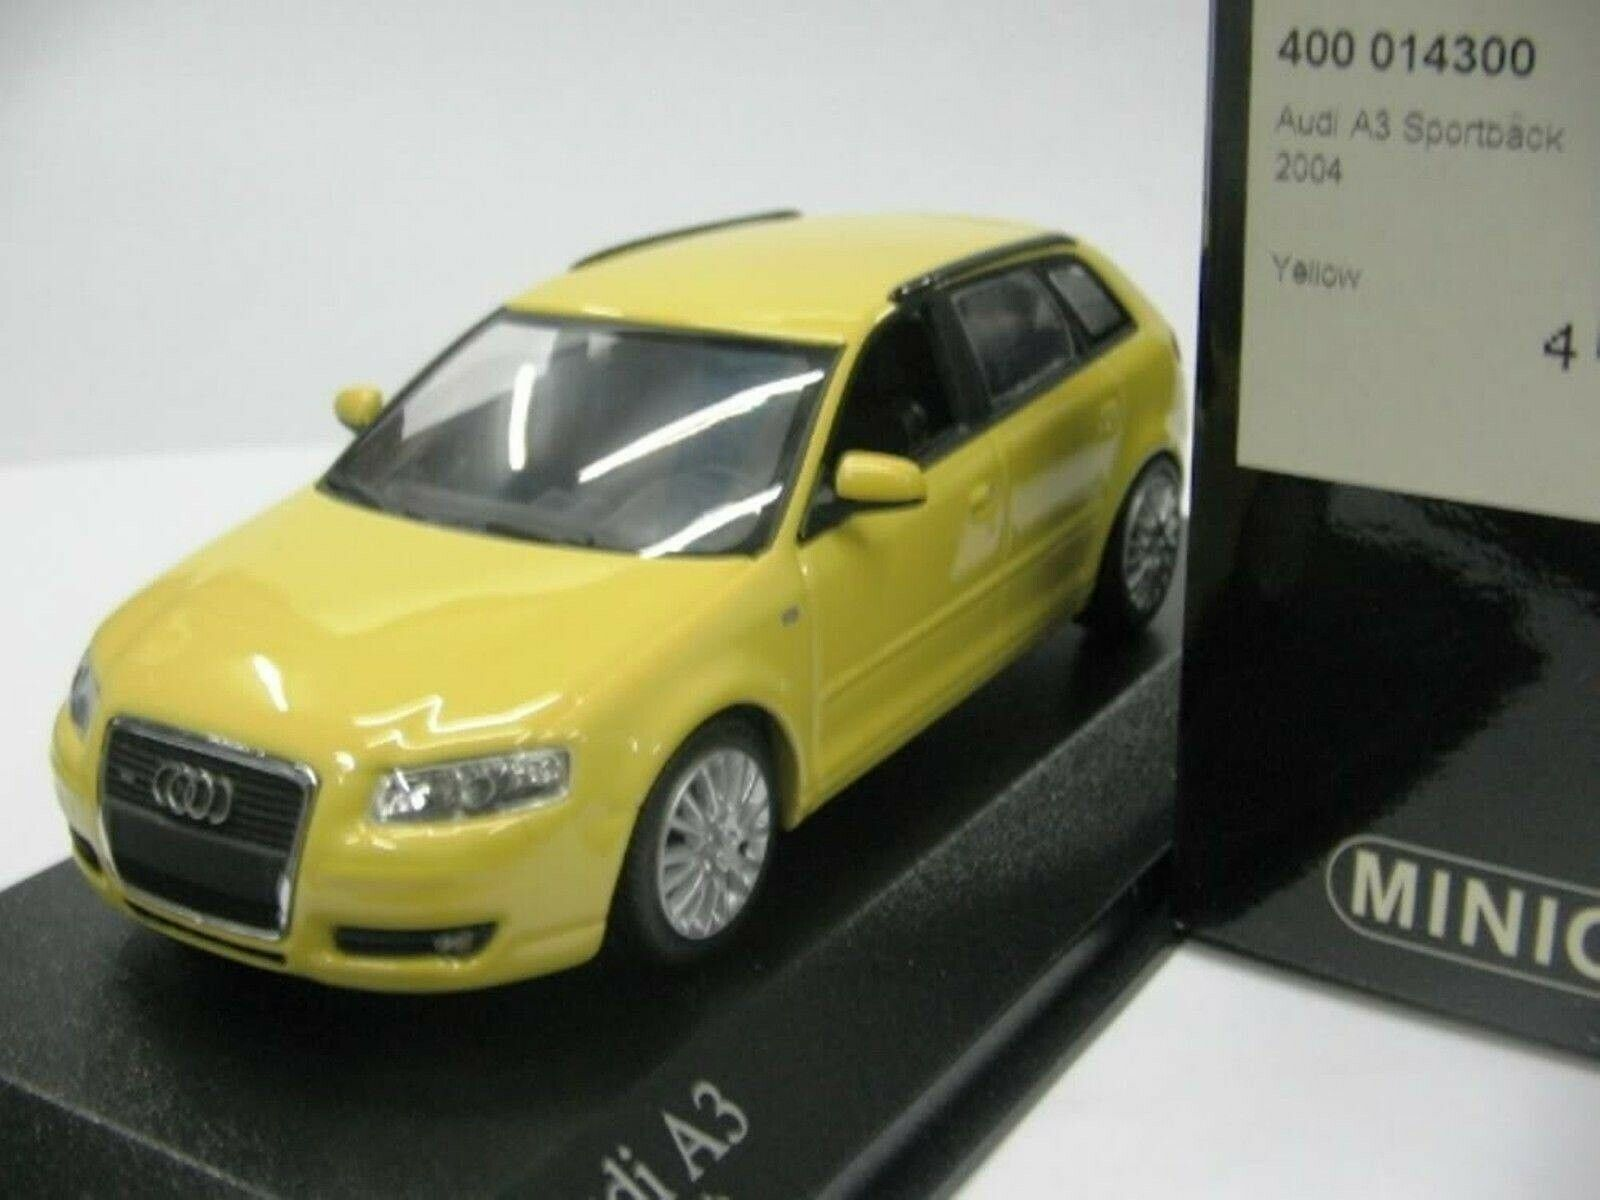 WOW EXTREMELY EXTREMELY EXTREMELY RARE Audi A3 8PA 5 Drs 3.2 VR6 Quattro Yellow 2004 1 43 Minichamps b1e2ad